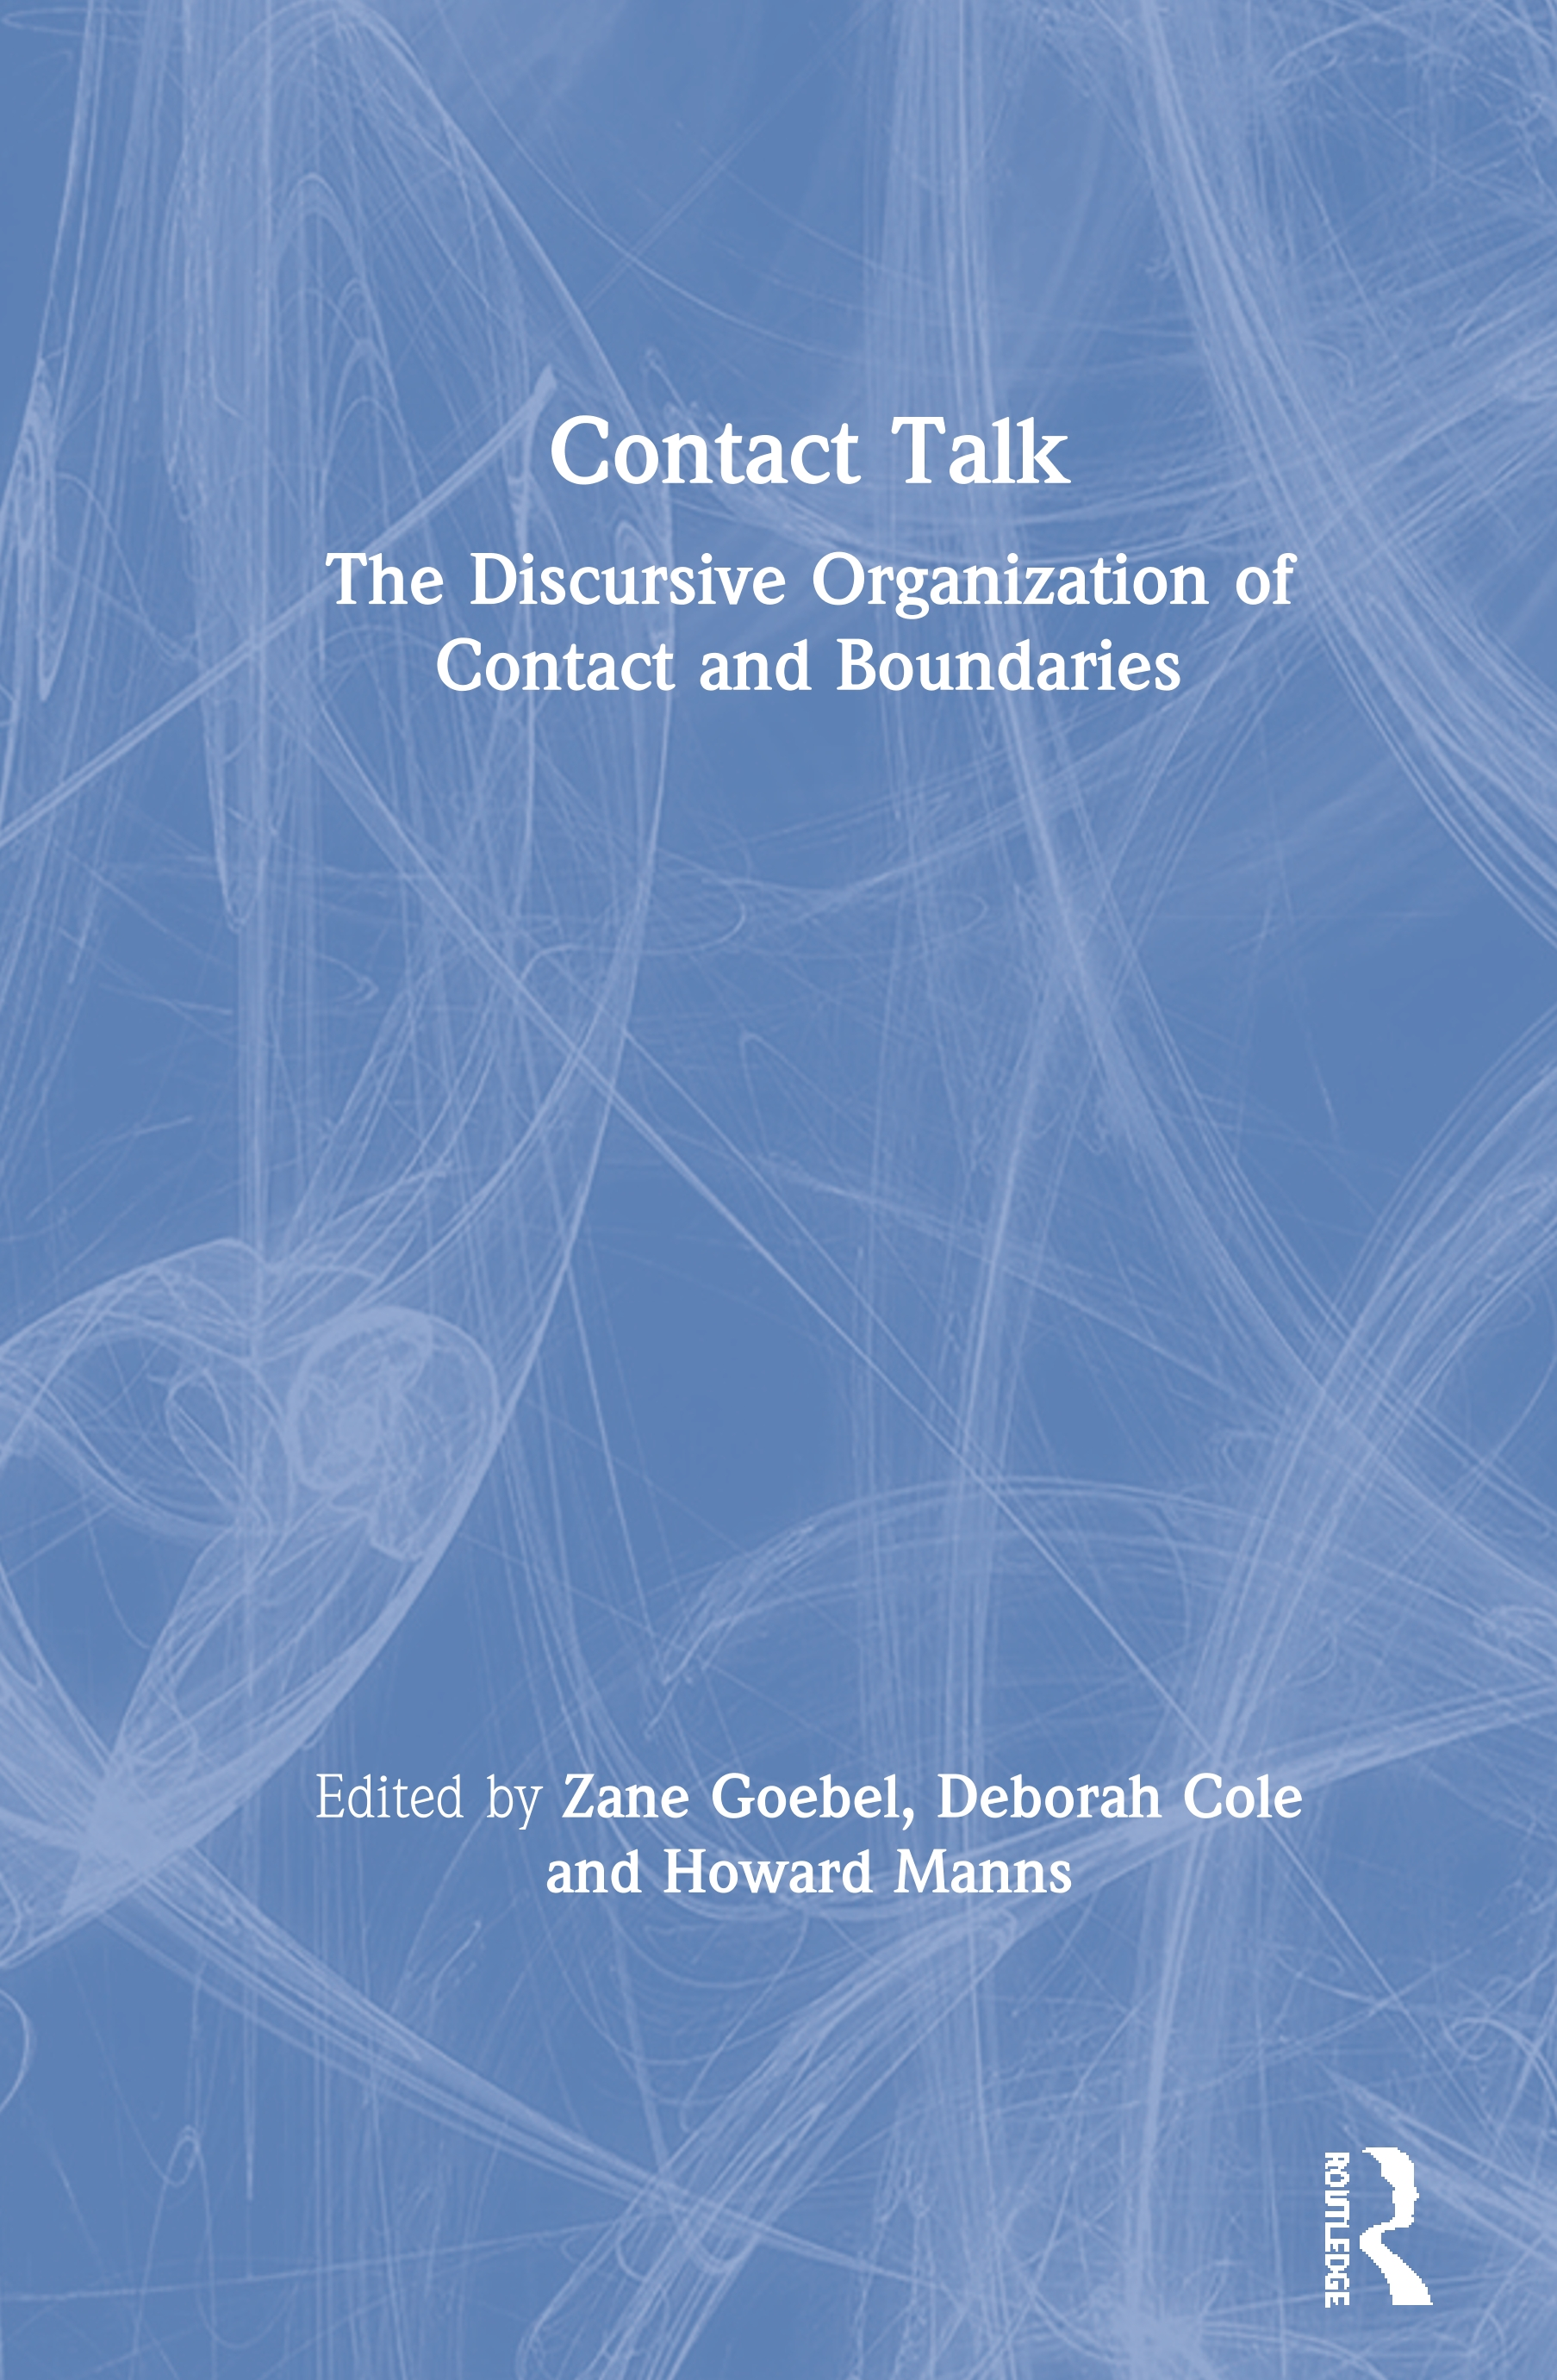 Theorizing the semiotic complexity of contact talk